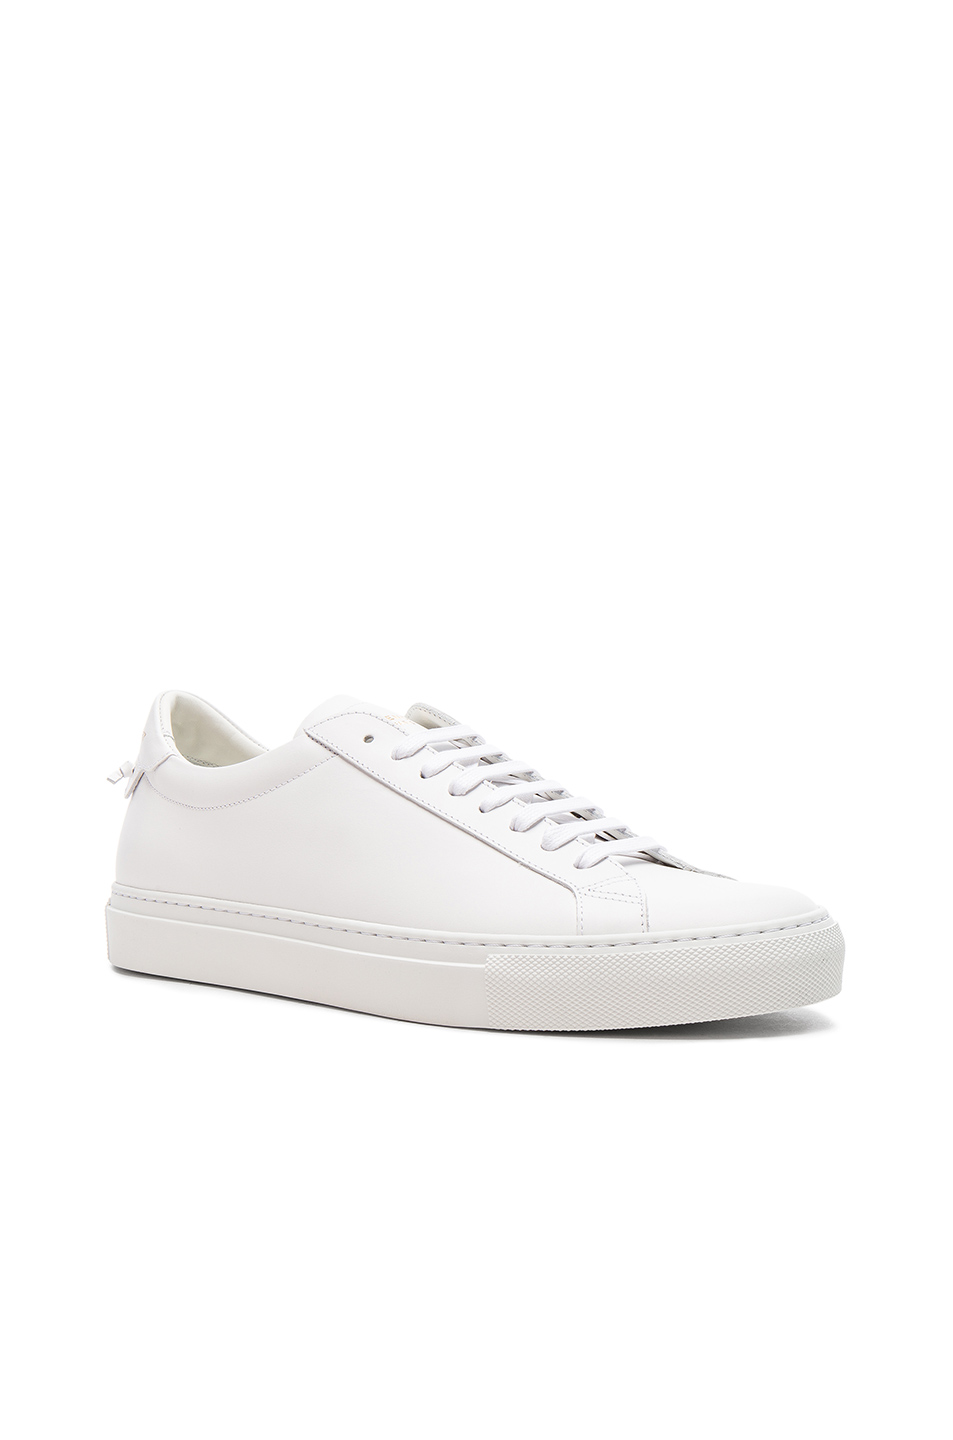 Givenchy Men's Urban Street Sheep Leather Sneakers In White